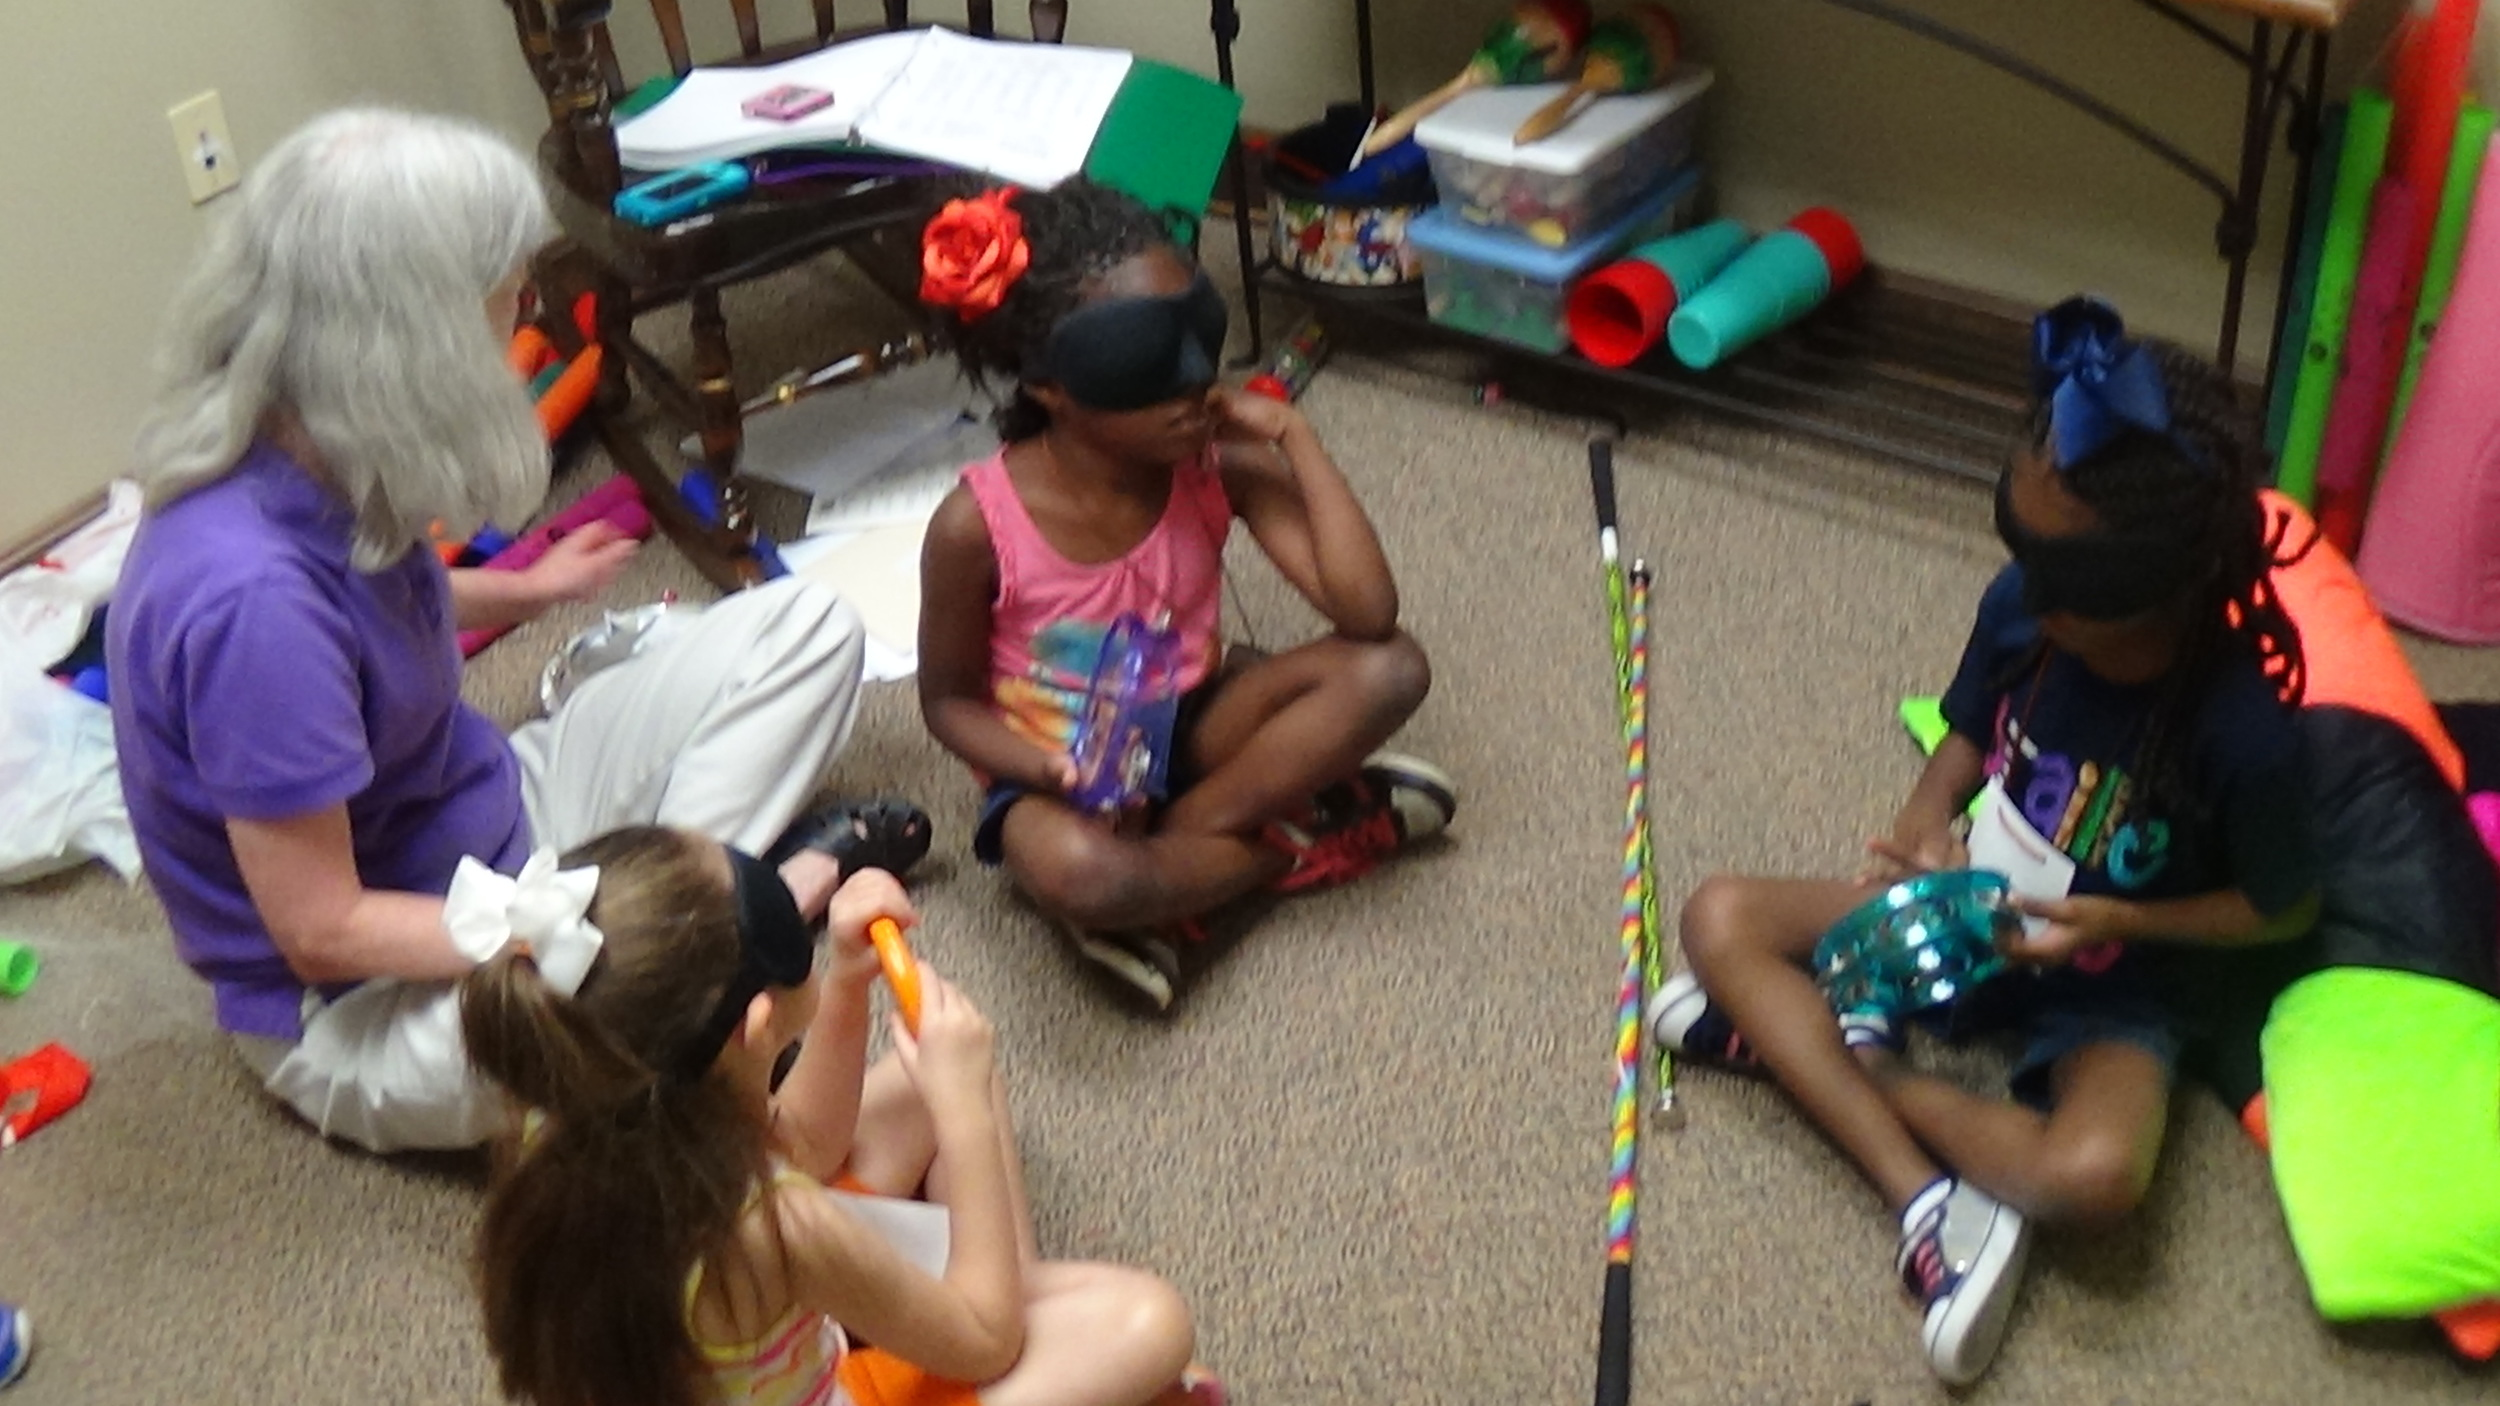 Ms. Sarah and students enjoy music class nonvisually